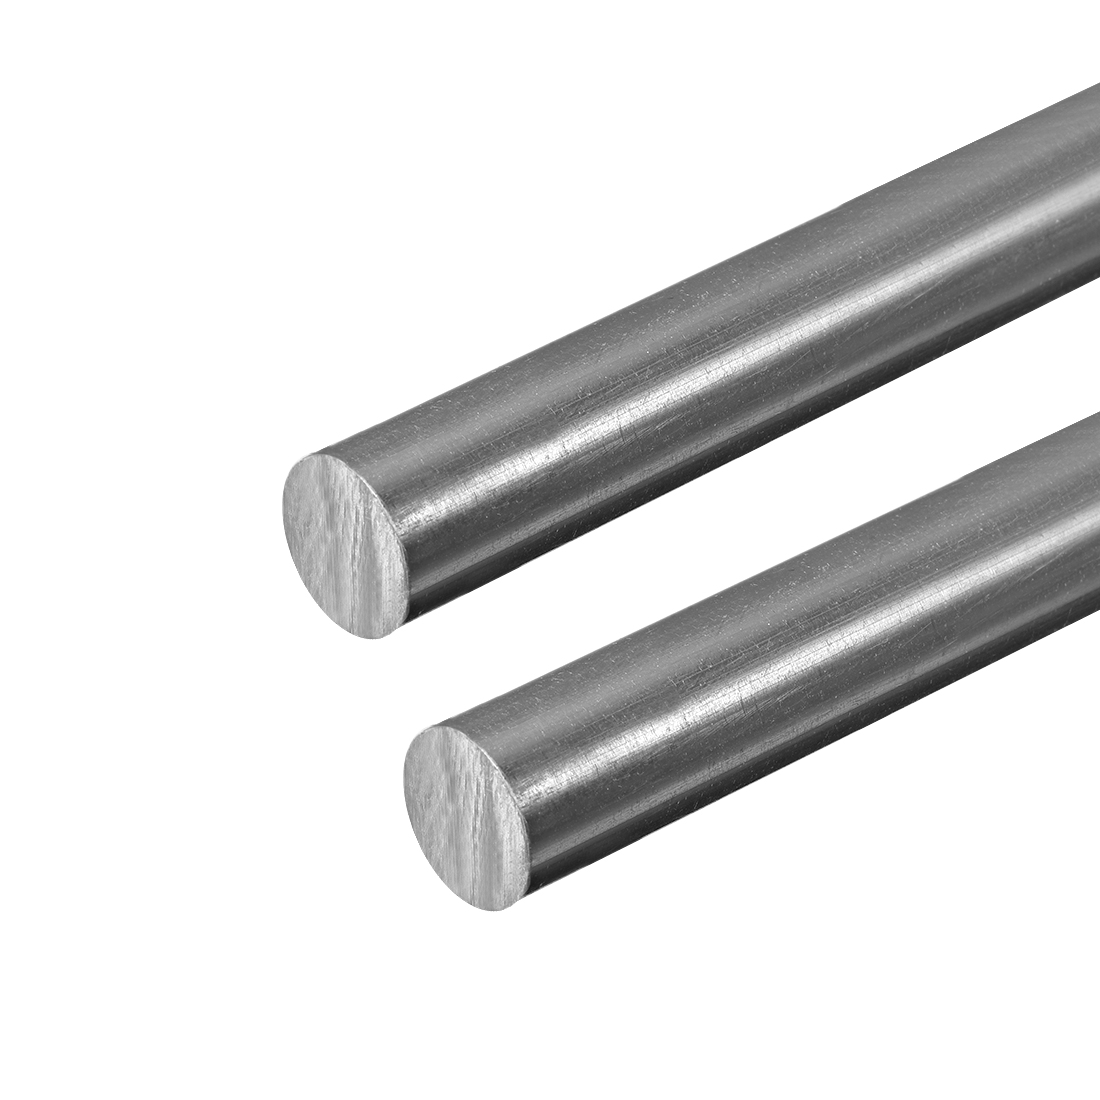 "PVC Round Rods ,16mm Dia, 20"" Length, Grey Engineering Plastic Round Rod 2pcs"